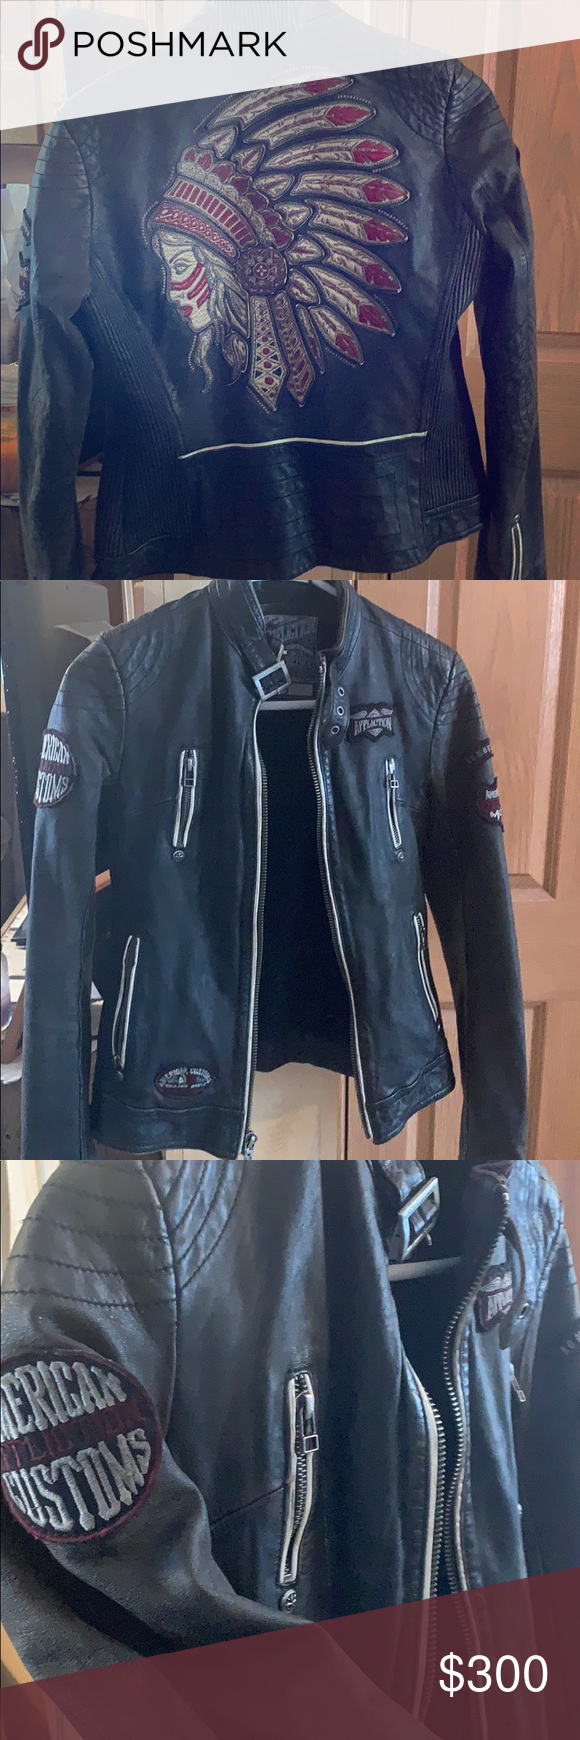 Affliction Leather Jacket Leather jacket, Jackets